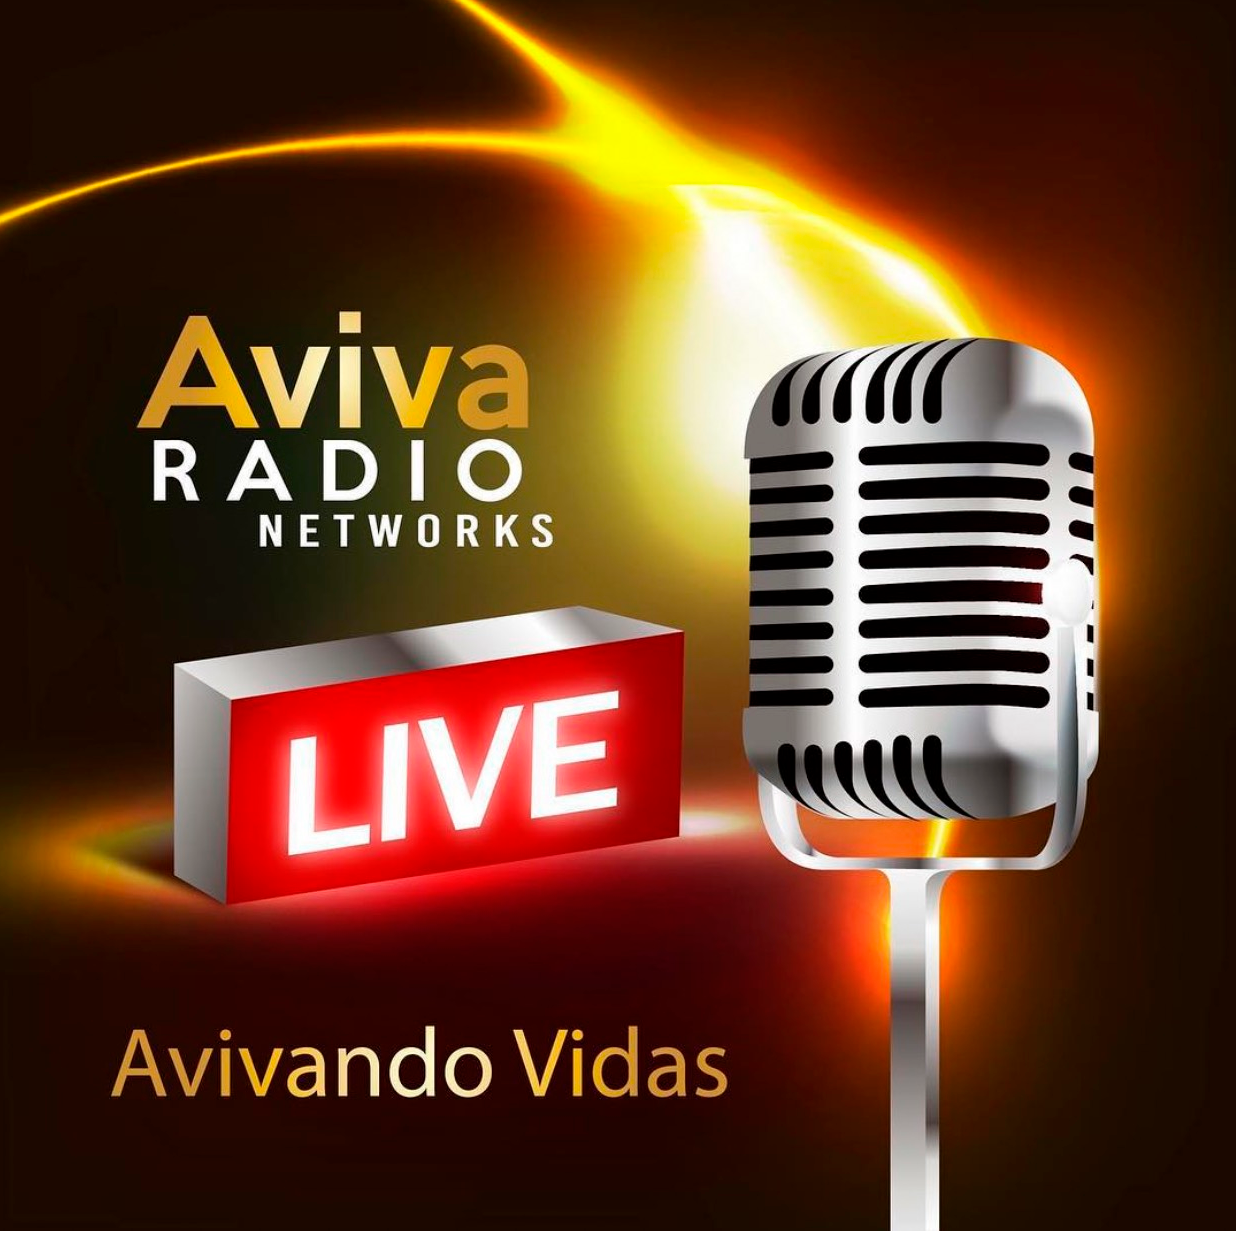 Aviva Radio Networks